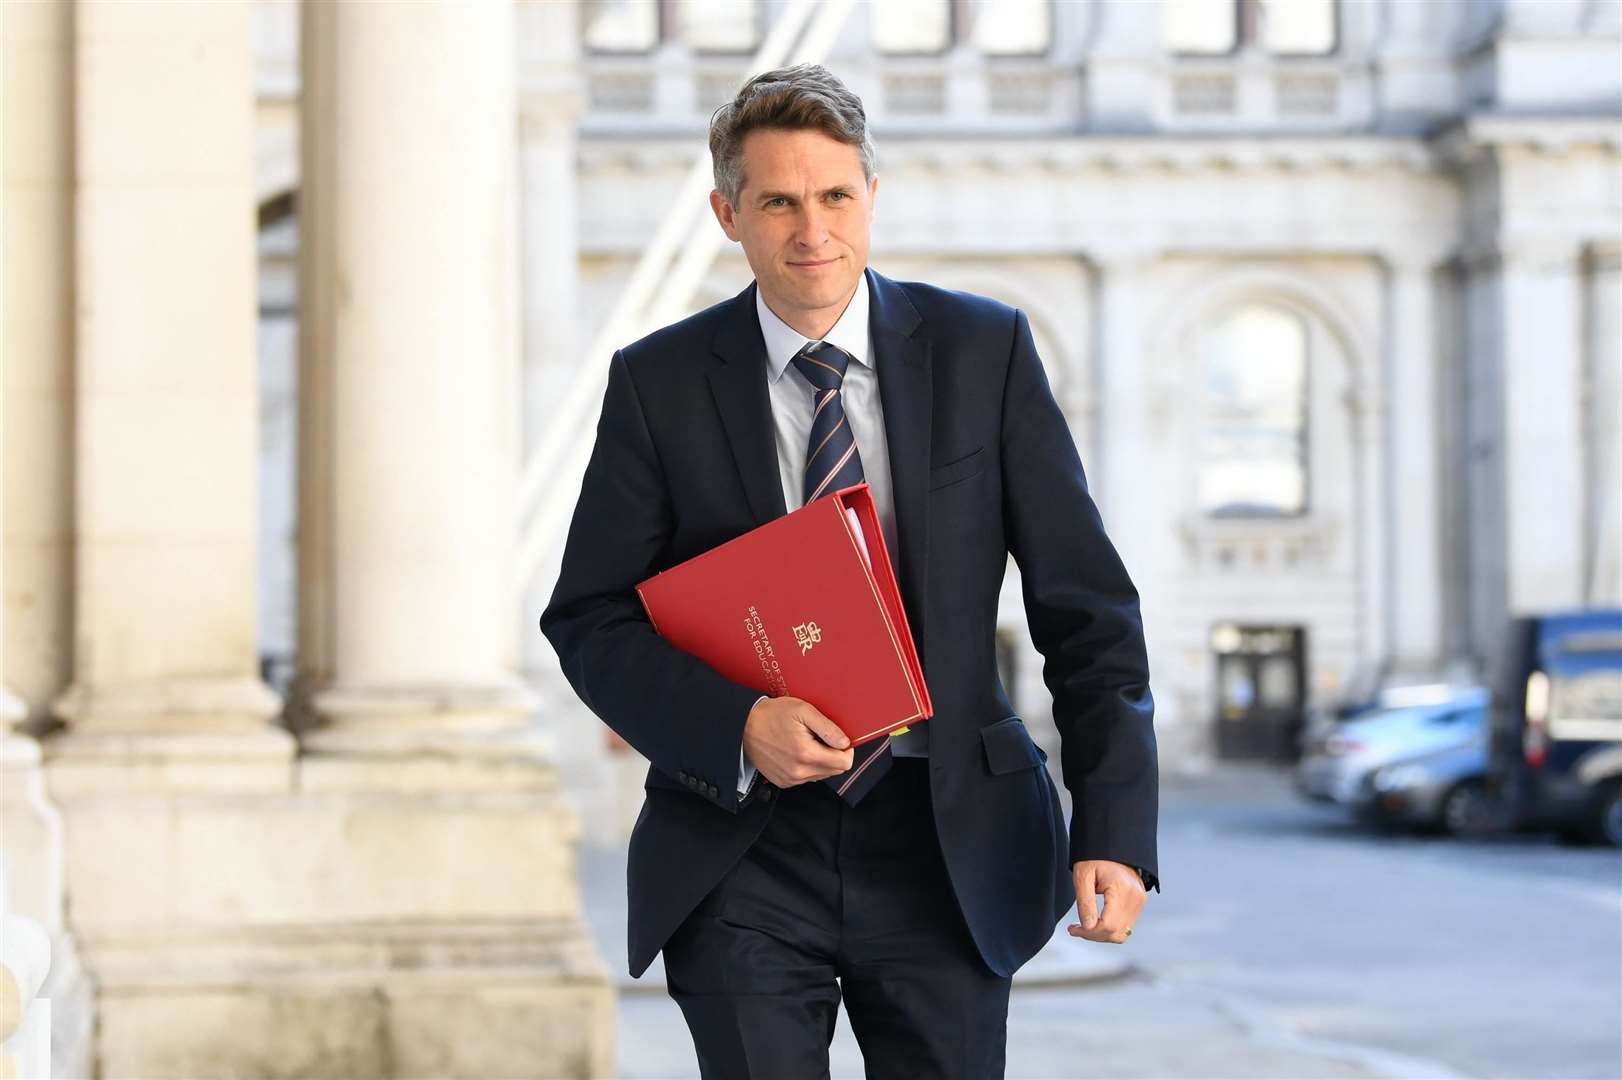 Education secretary Gavin Williamson. Picture: Stefan Rousseau/PA (43854876)